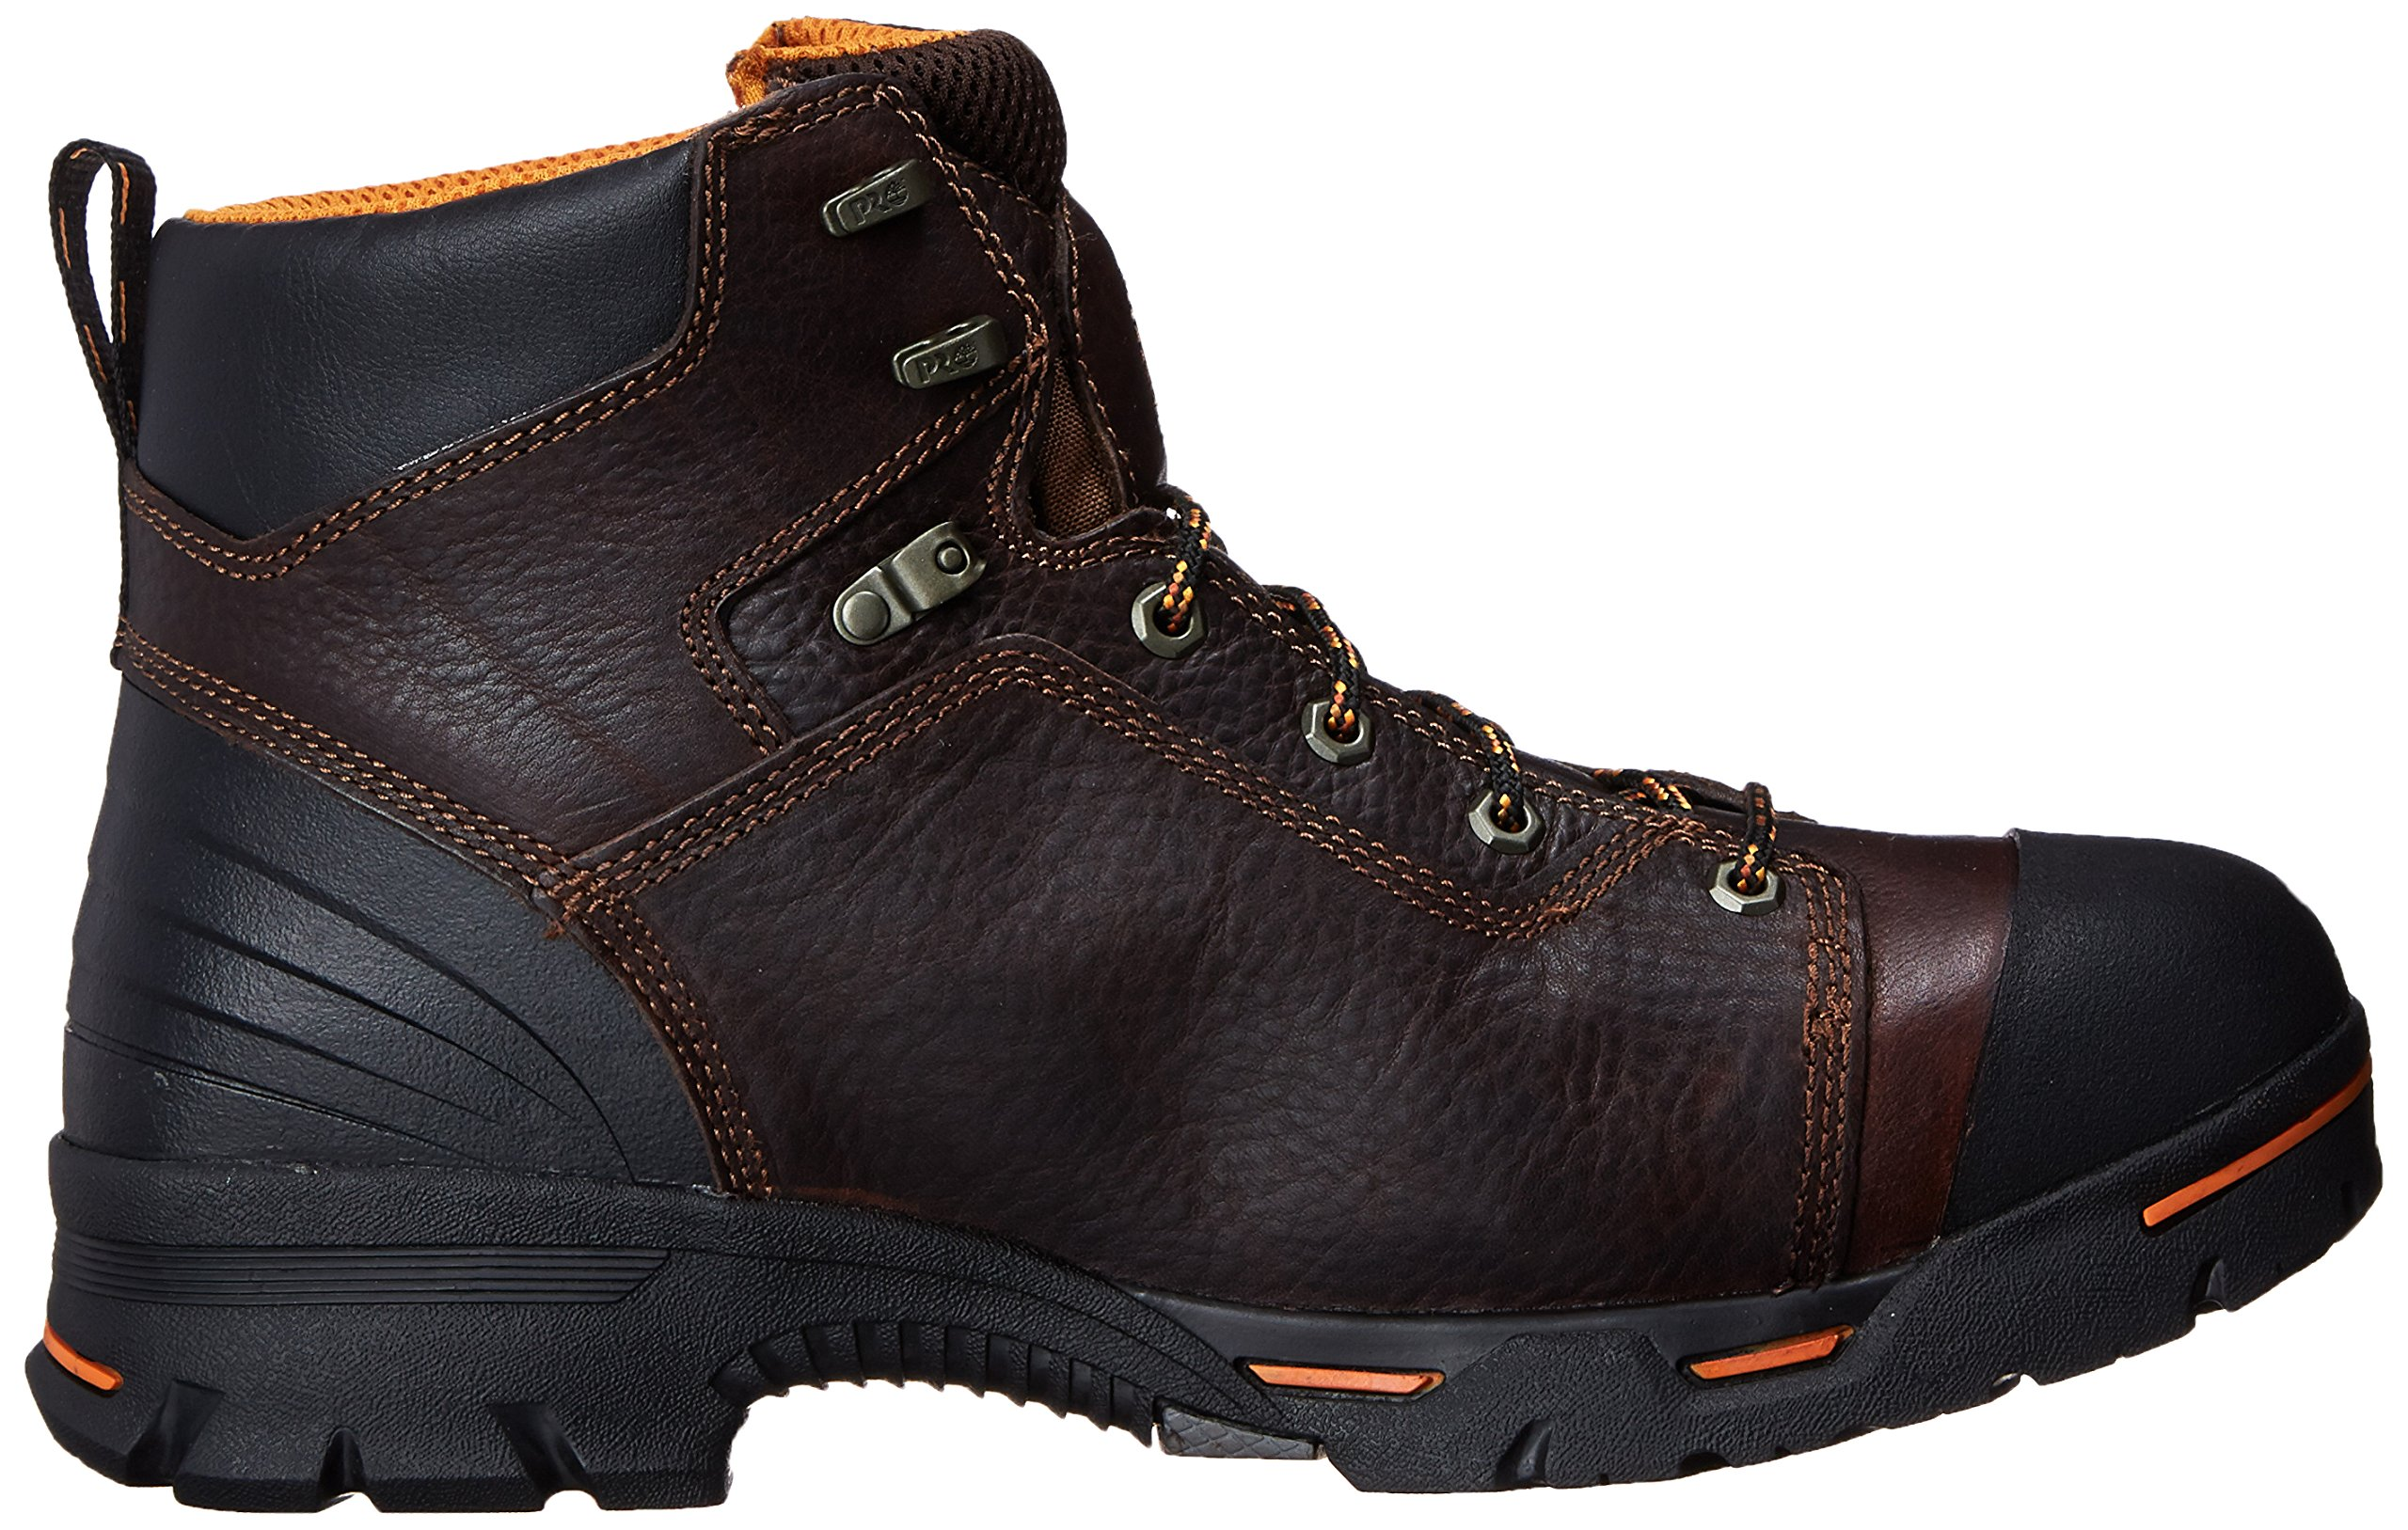 Timberland PRO Men's Endurance 6-Inch Soft Toe BR Work Boot,Briar,9.5 W US by Timberland PRO (Image #7)